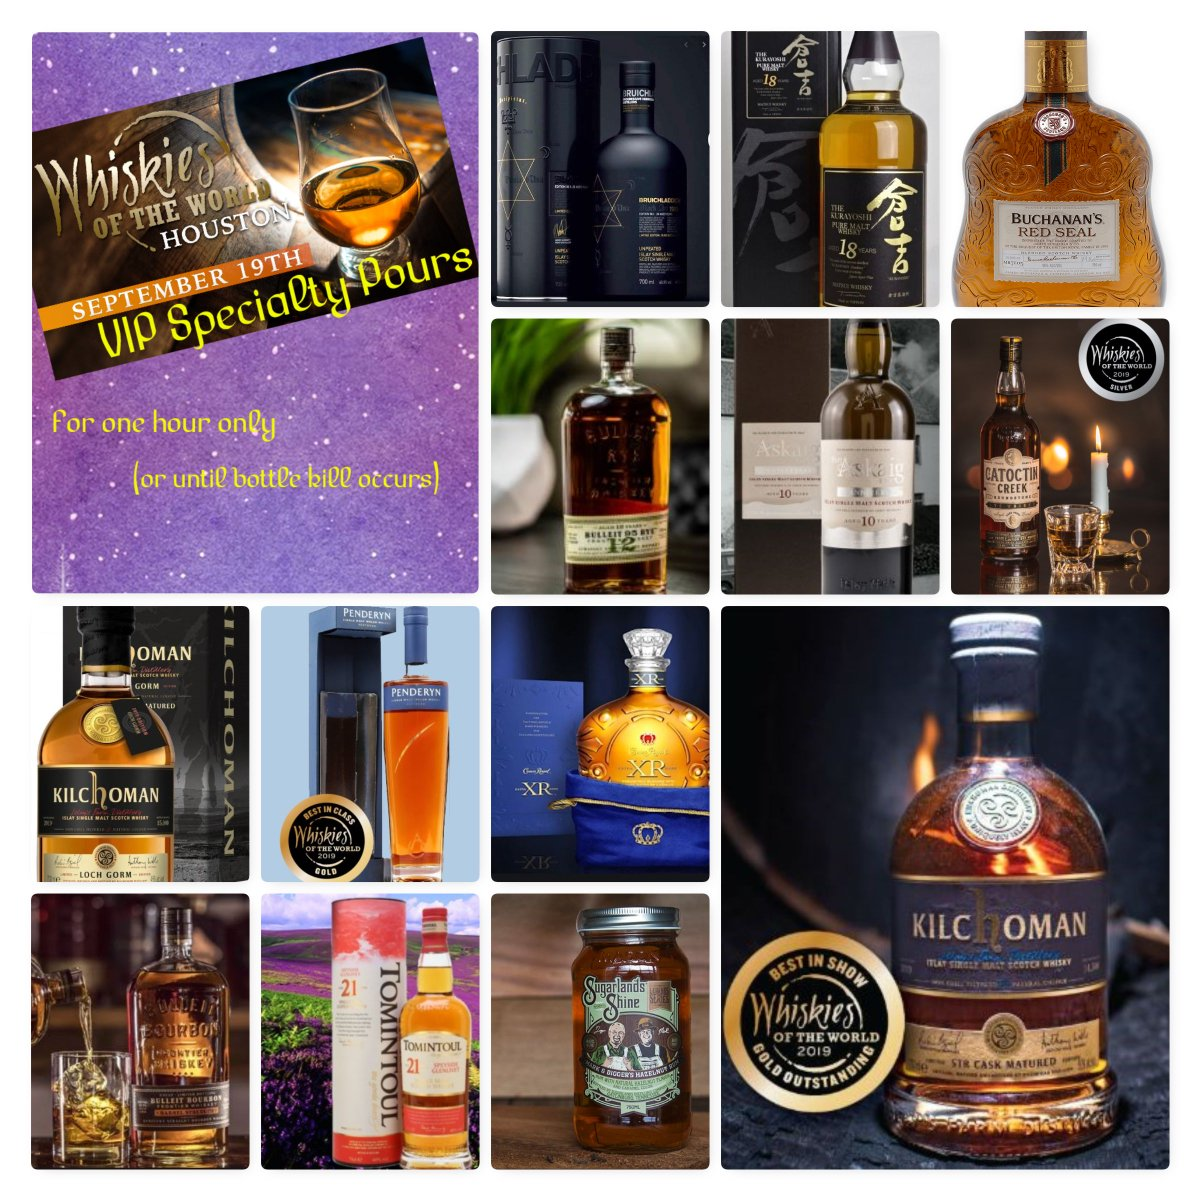 Haven't got your tickets for #wowhou yet? Here's a sneek peak at some of what our friends are sharing Sept.19th.  #whiskiesoftheworld #wowaus # #whisky #scotch #scotchwhisky #whiskey #bourbon #singlemalt #singlegrain #blendedmalt #blendedscotch #blendedgrain #whiskyfriends<br>http://pic.twitter.com/mHBK2J2Psw